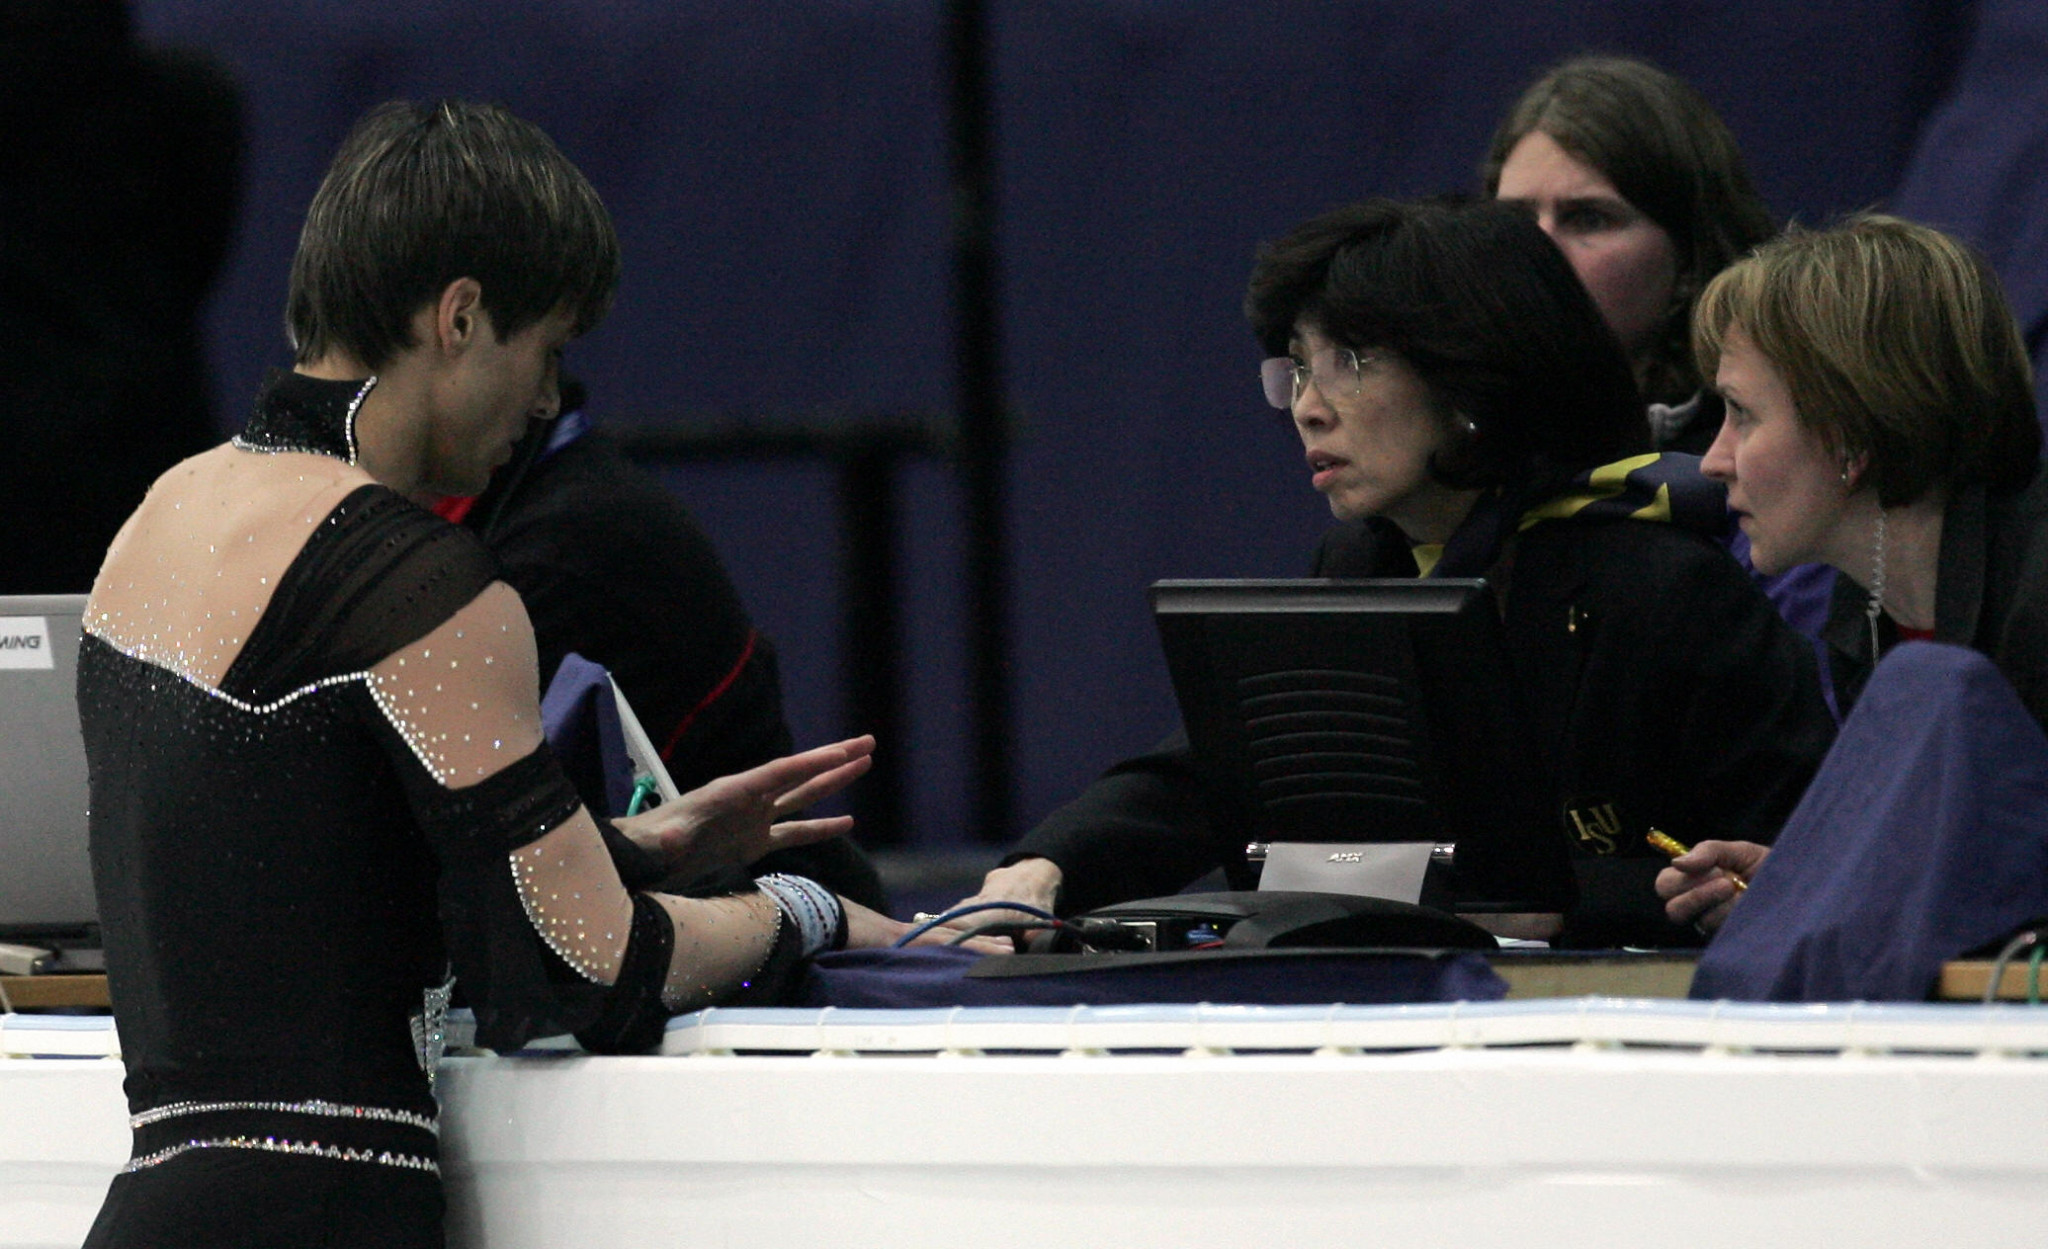 A number of figure skating events have been cancelled due to the coronavirus pandemic ©Getty Images